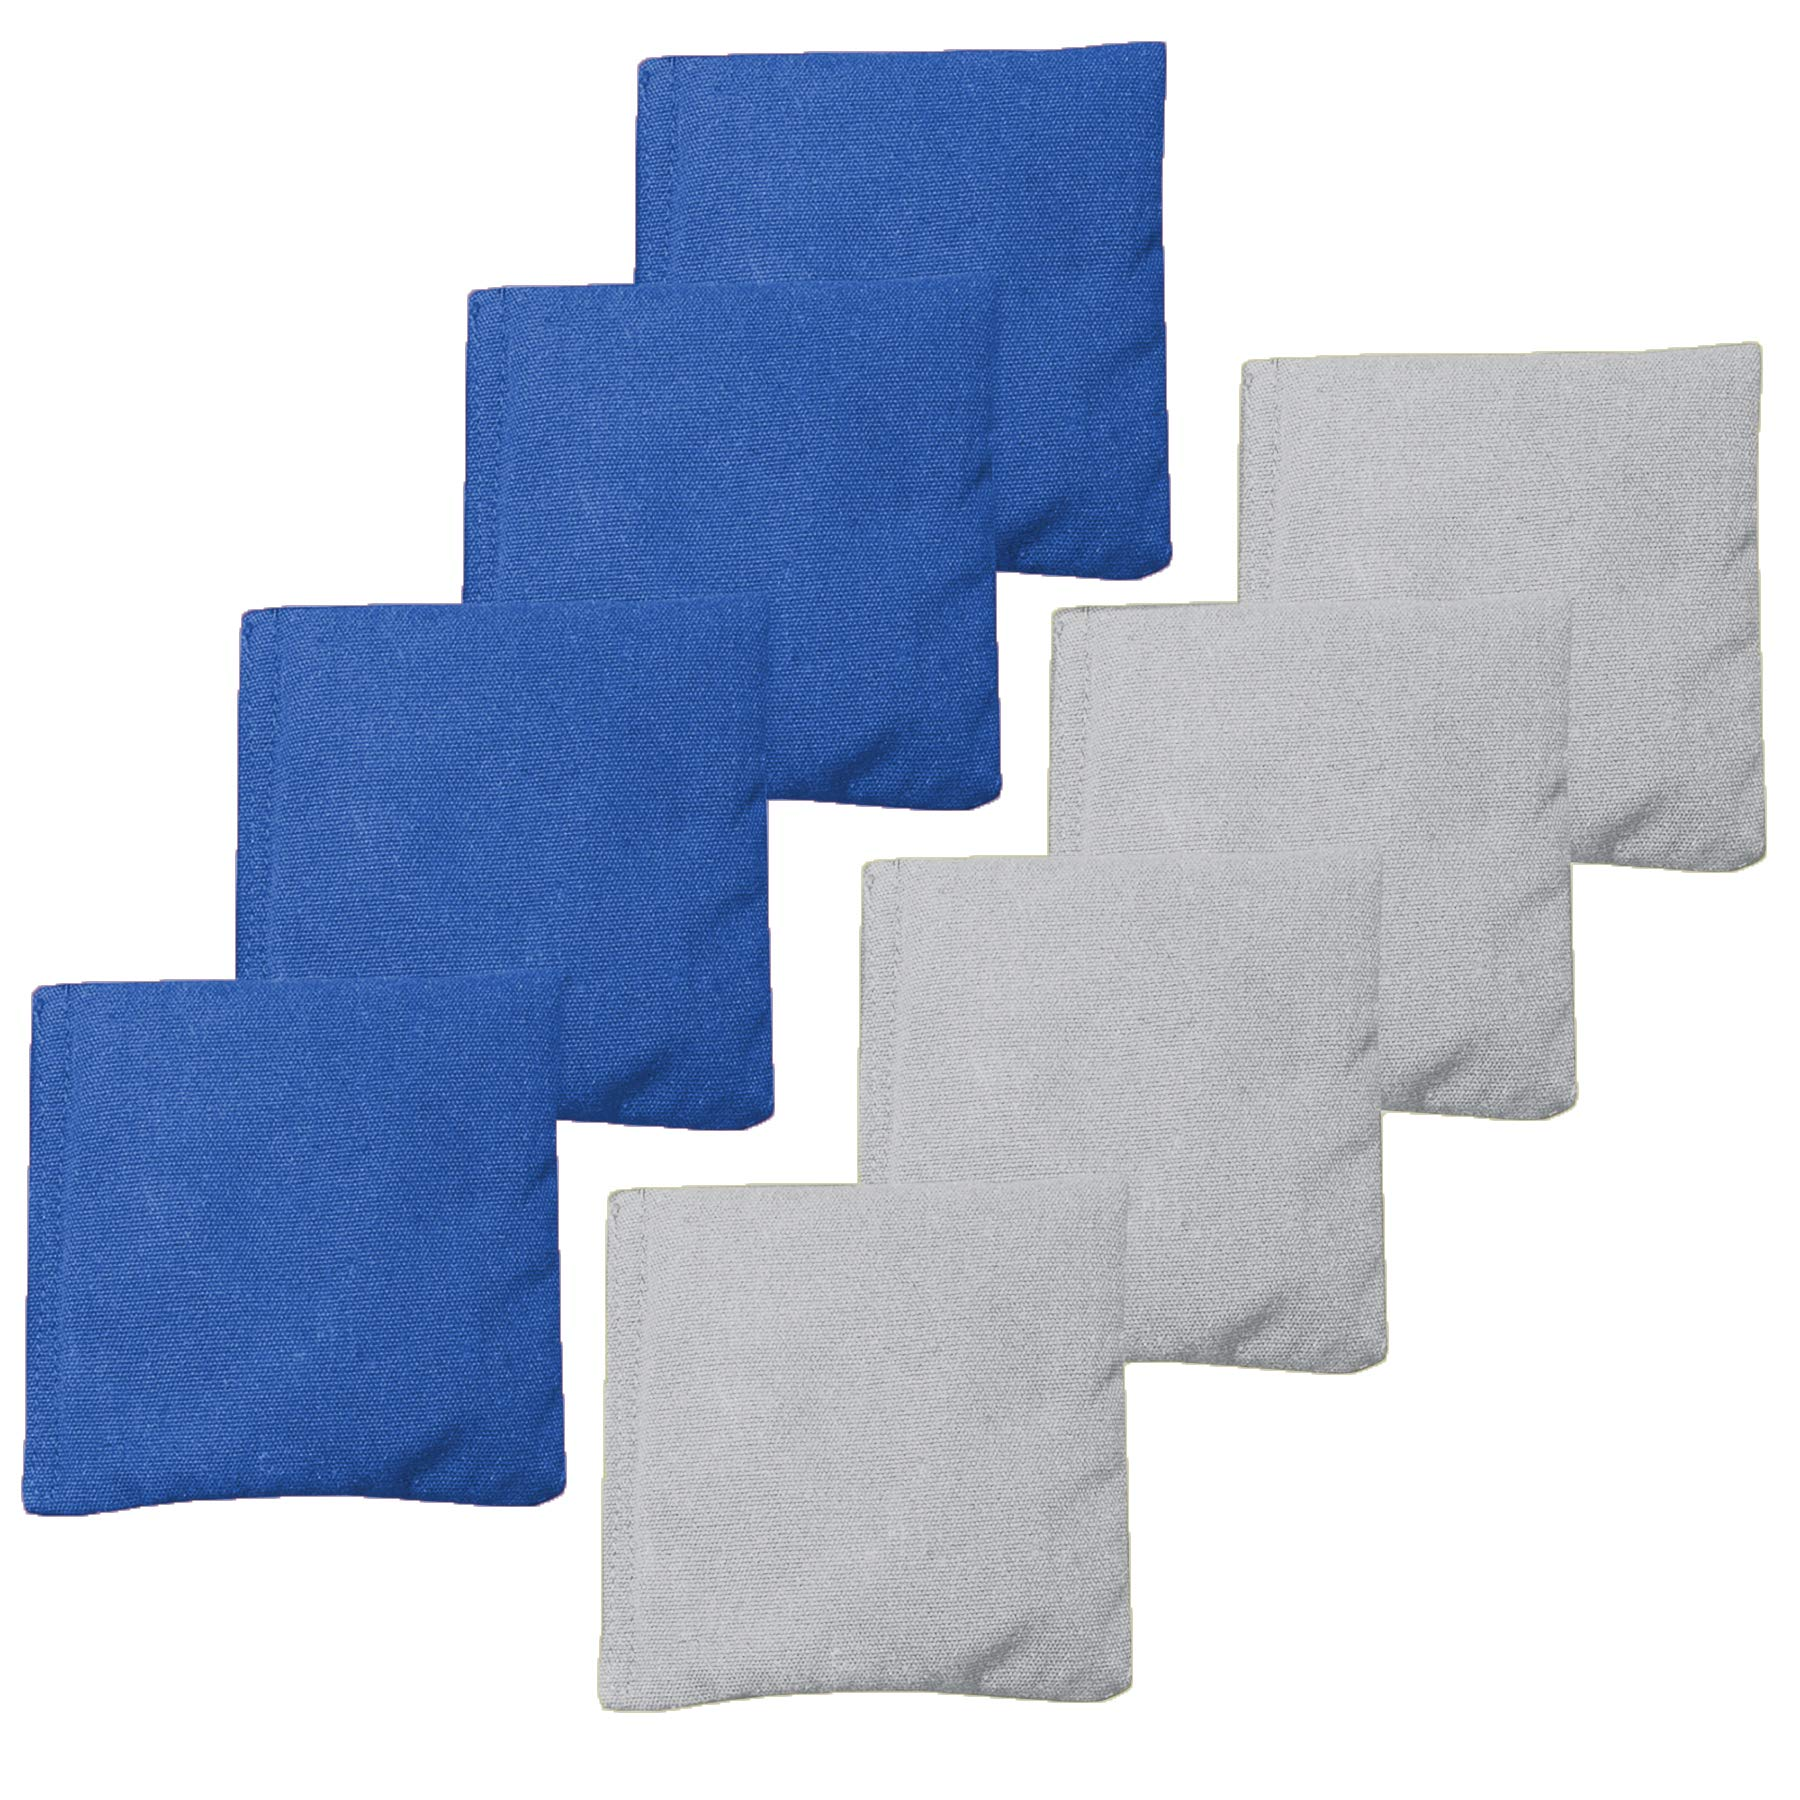 All Weather Cornhole Bean Bags Set of 8 - Duck Cloth, Regulation Size & Weight - Gray & Royal Blue by Barcaloo